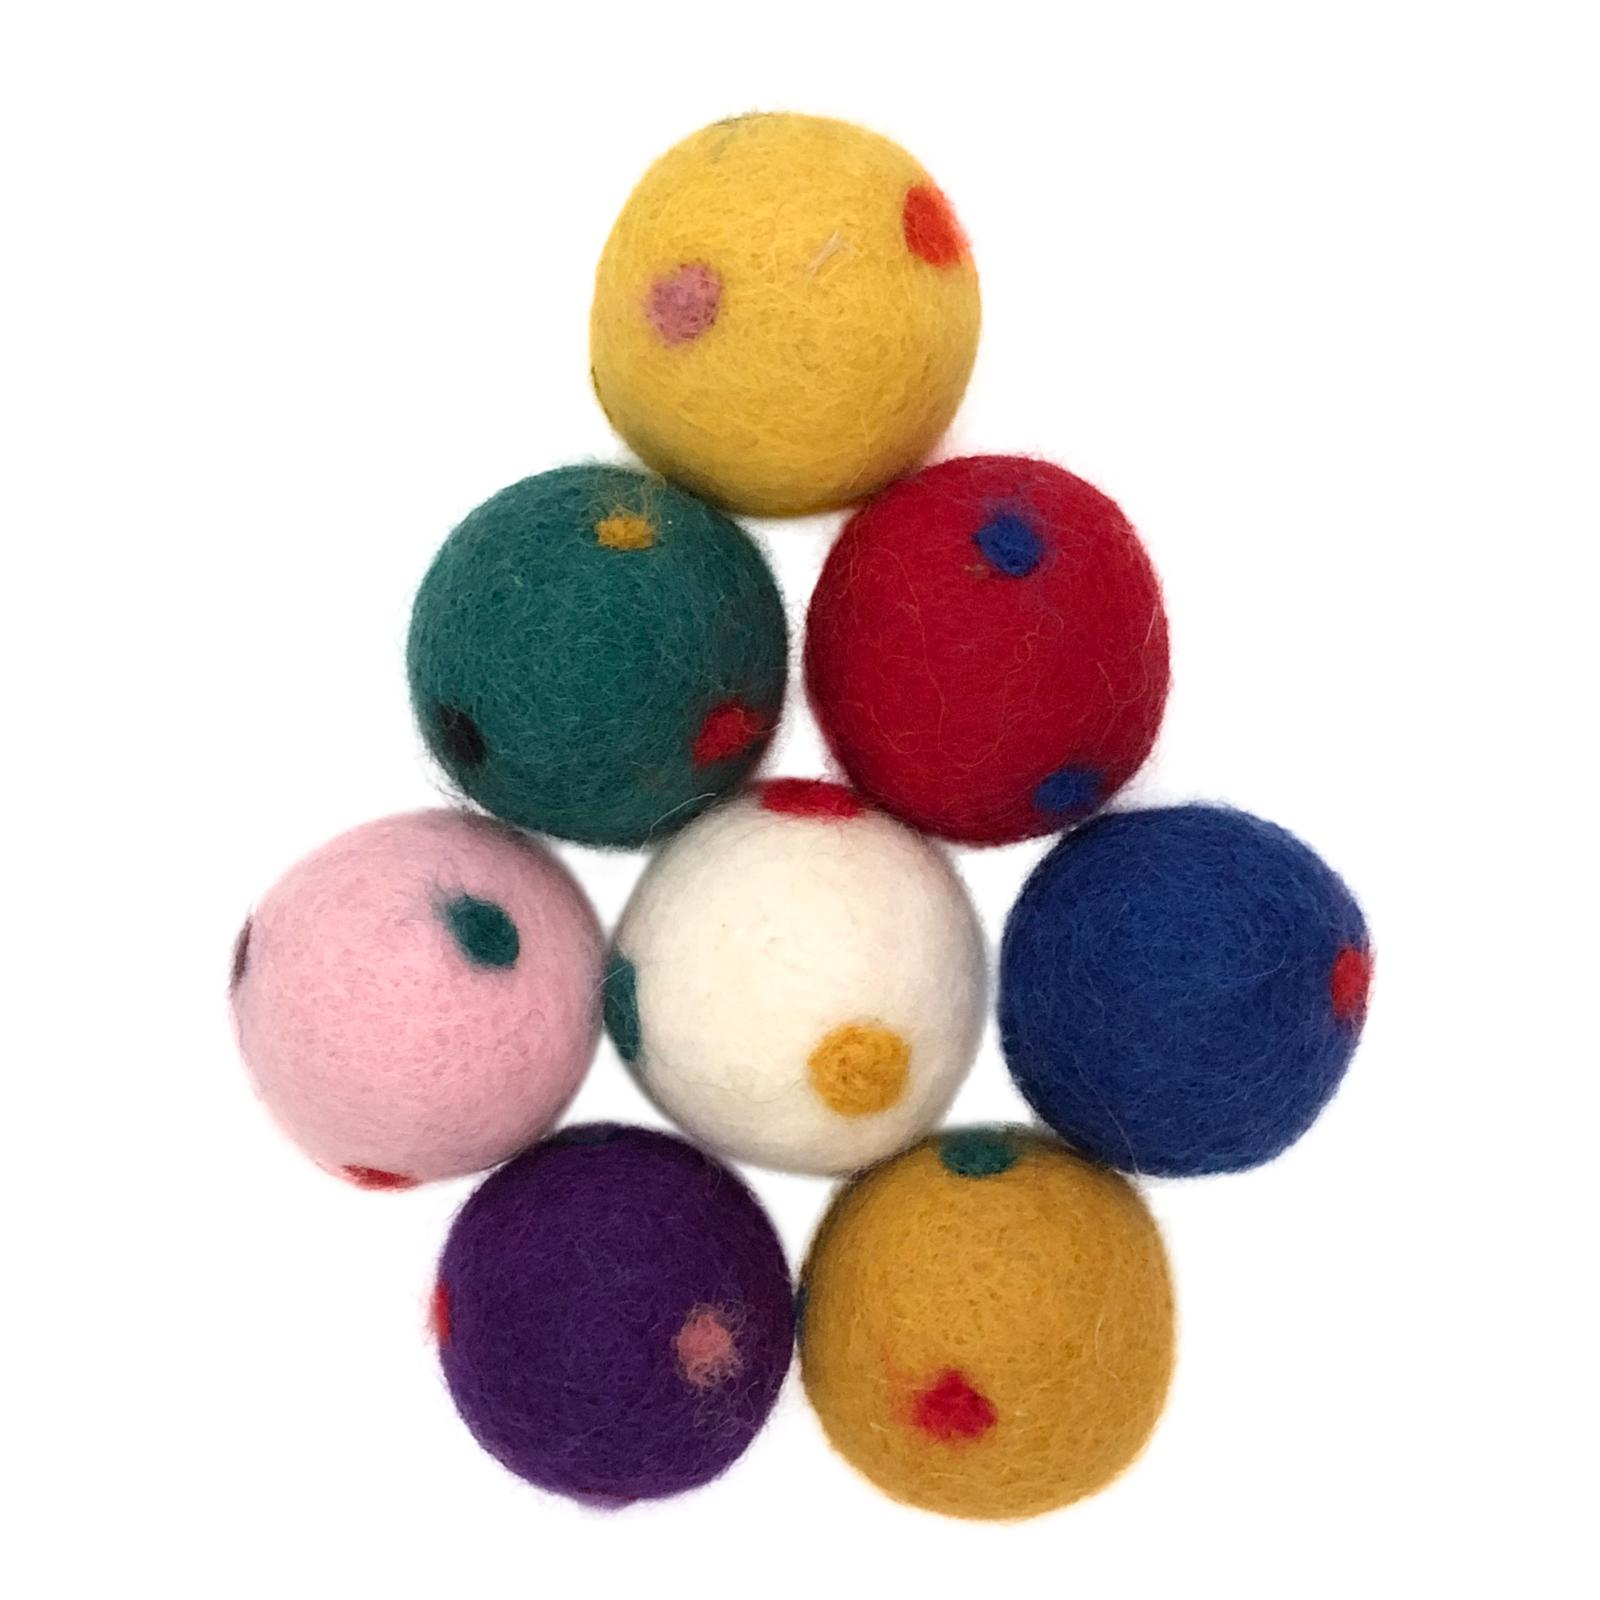 Wool Cat Toys, Eco Friendly Safe for All Animals, Polky Design